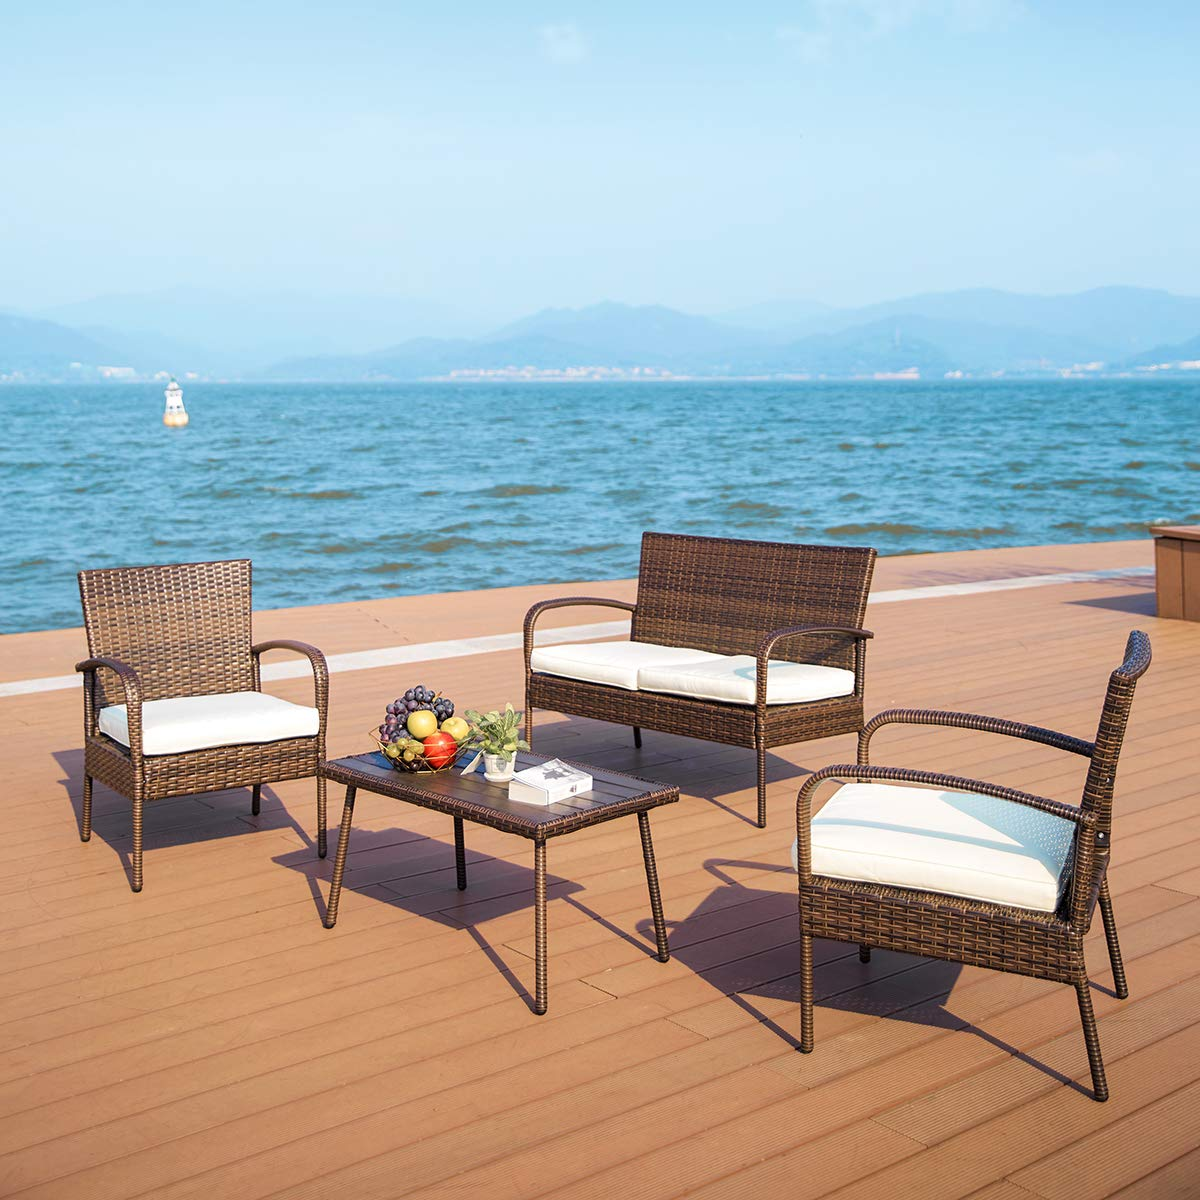 PAMAPIC Outdoor Patio Furniture 4 Pieces Embossing PE Rattan Wicker Sofa and Chairs Set